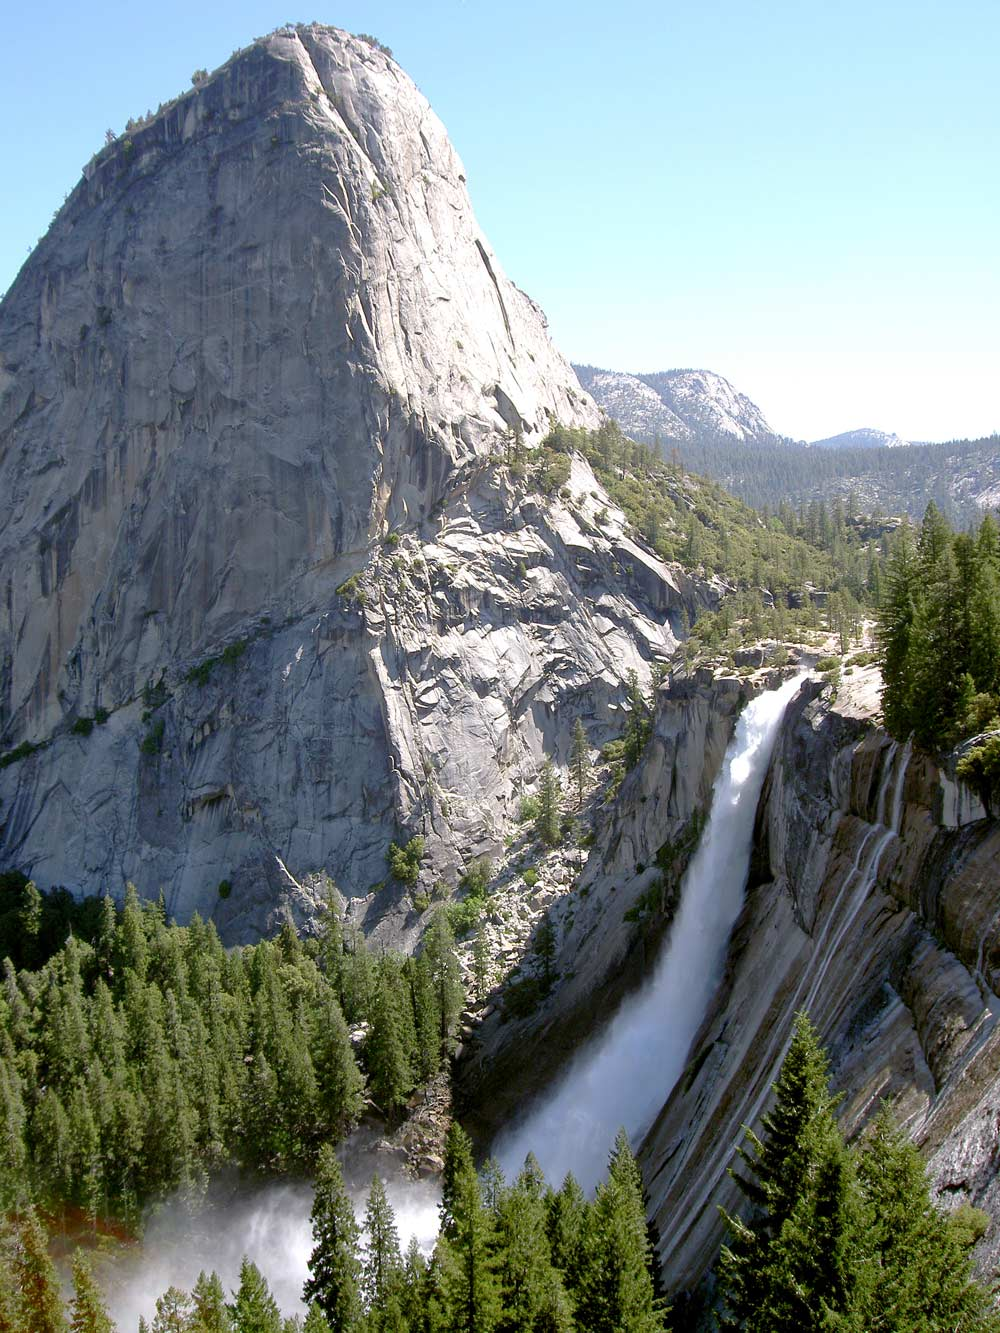 View of Nevada Fall from the John Muir Trail, Yosemite National Park